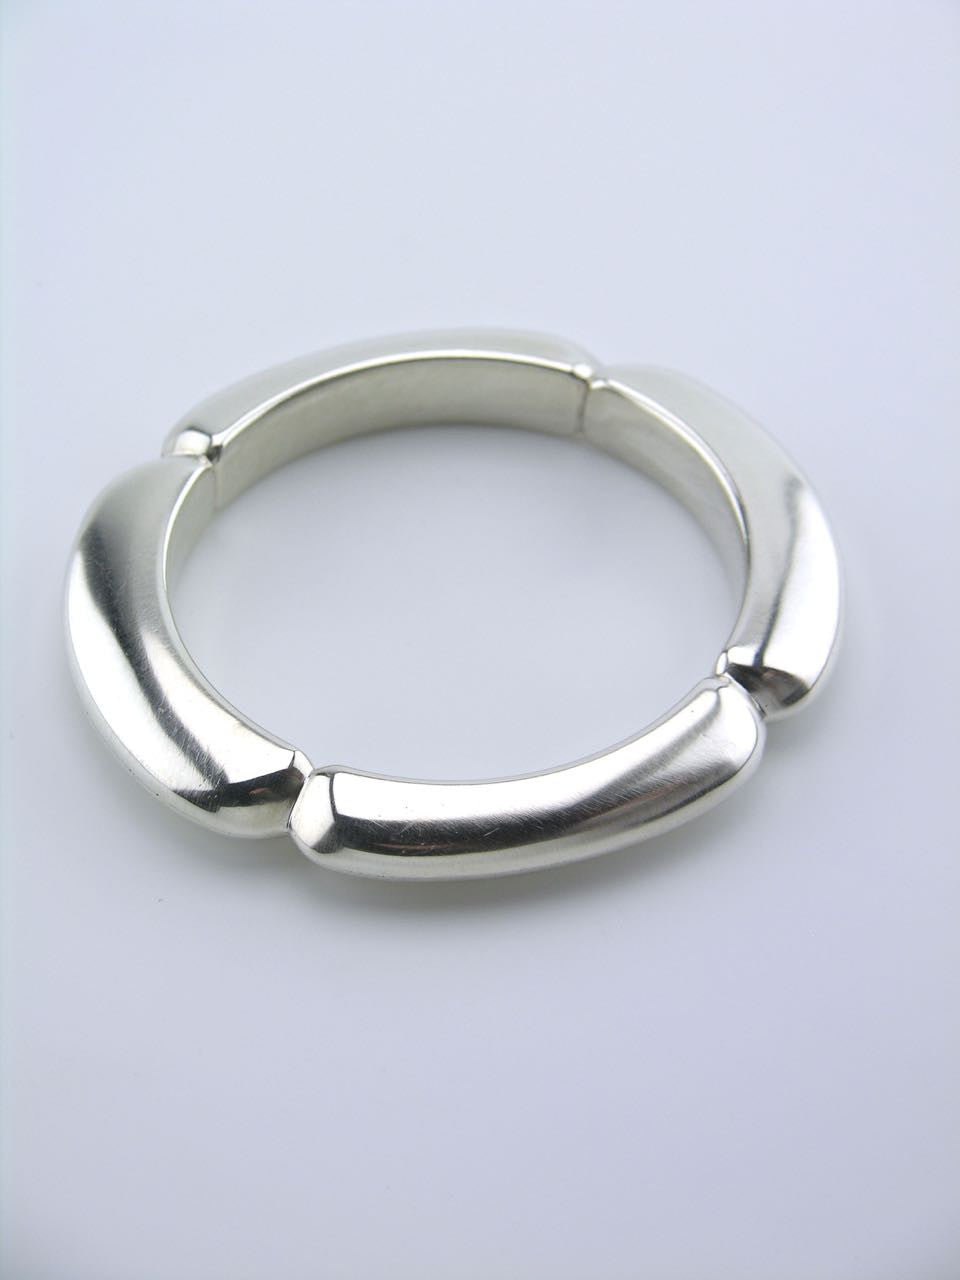 Georg Jensen solid silver modernist segmented bangle - design 253